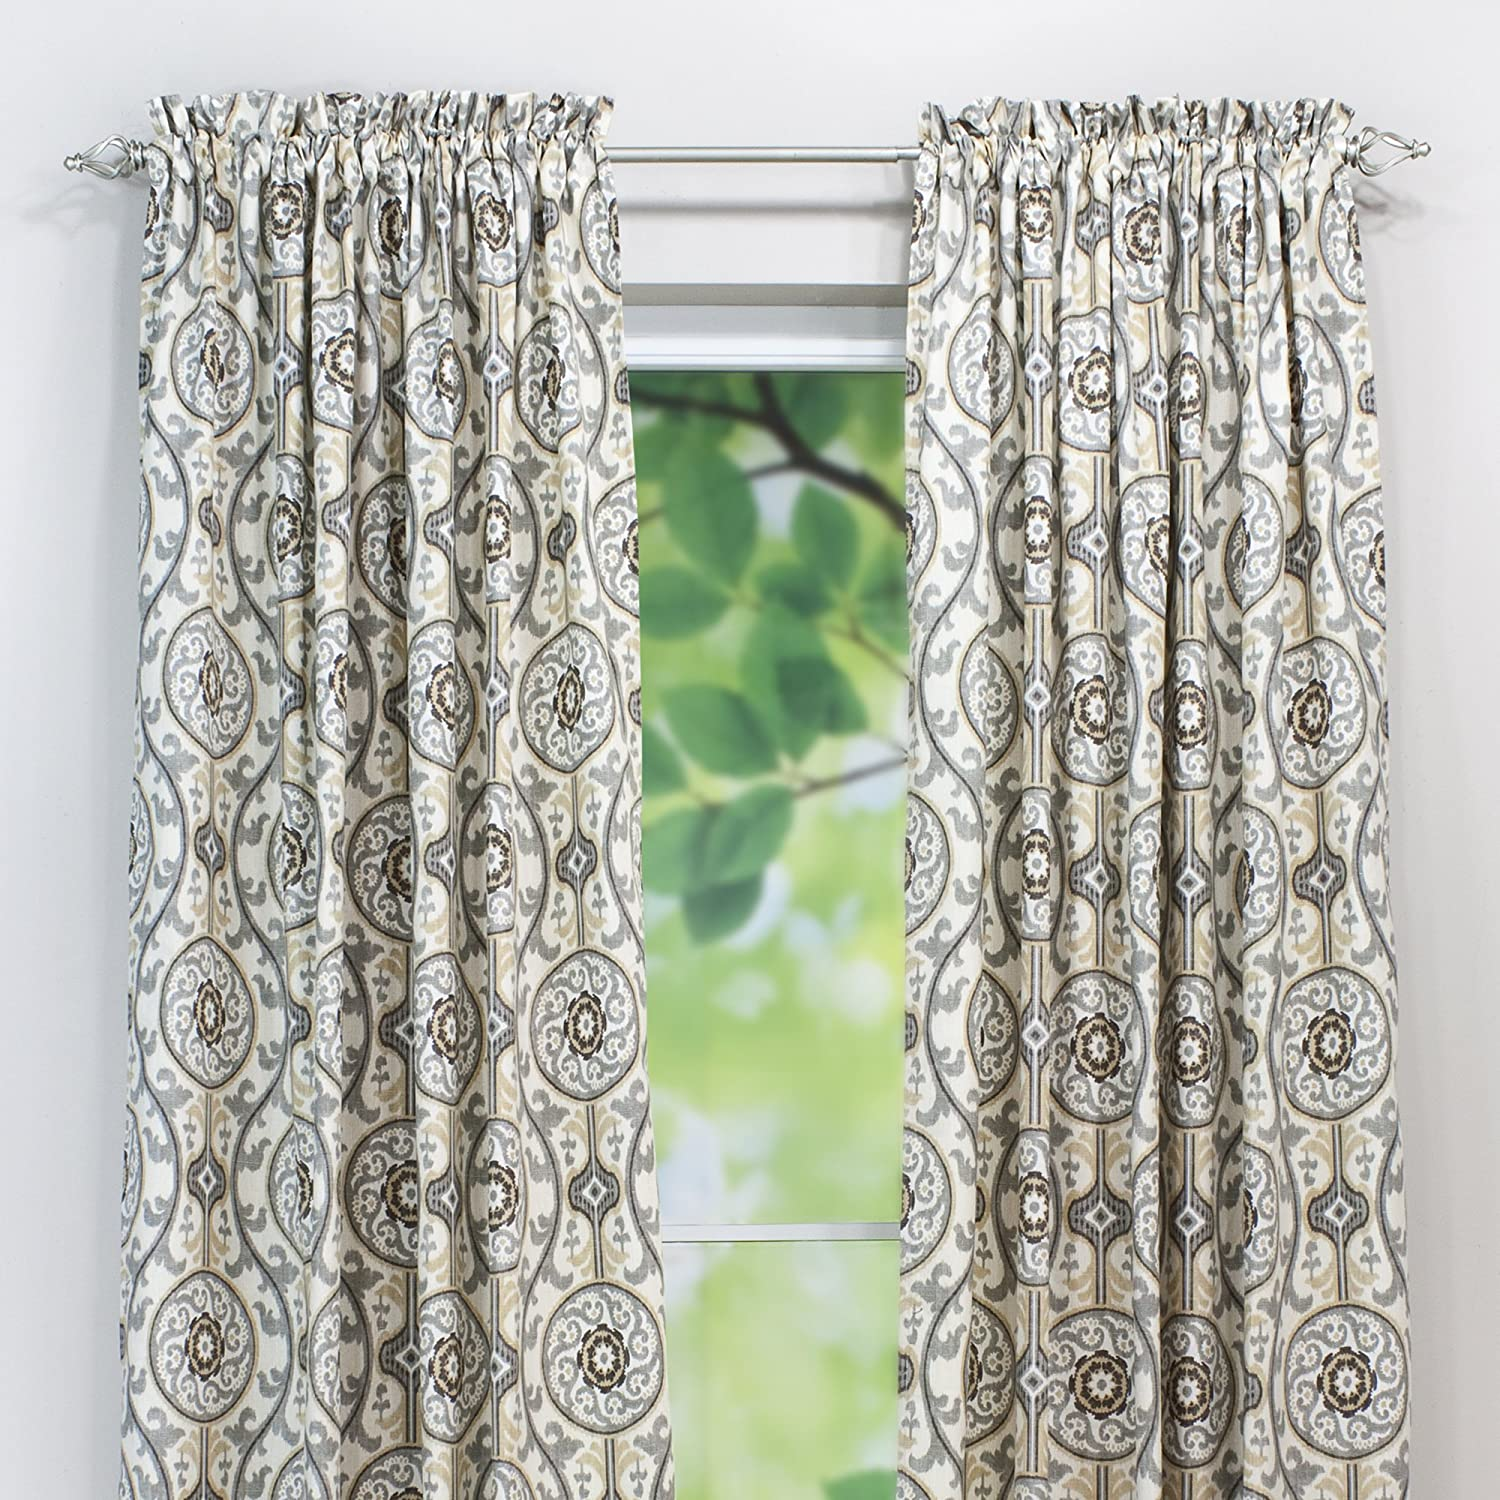 Brite Ideas Living /& Company Oh Suzani Metal 54 by 108-Inch Rod Pocket Curtain Panel for 1.5 to 2-Inch Rod